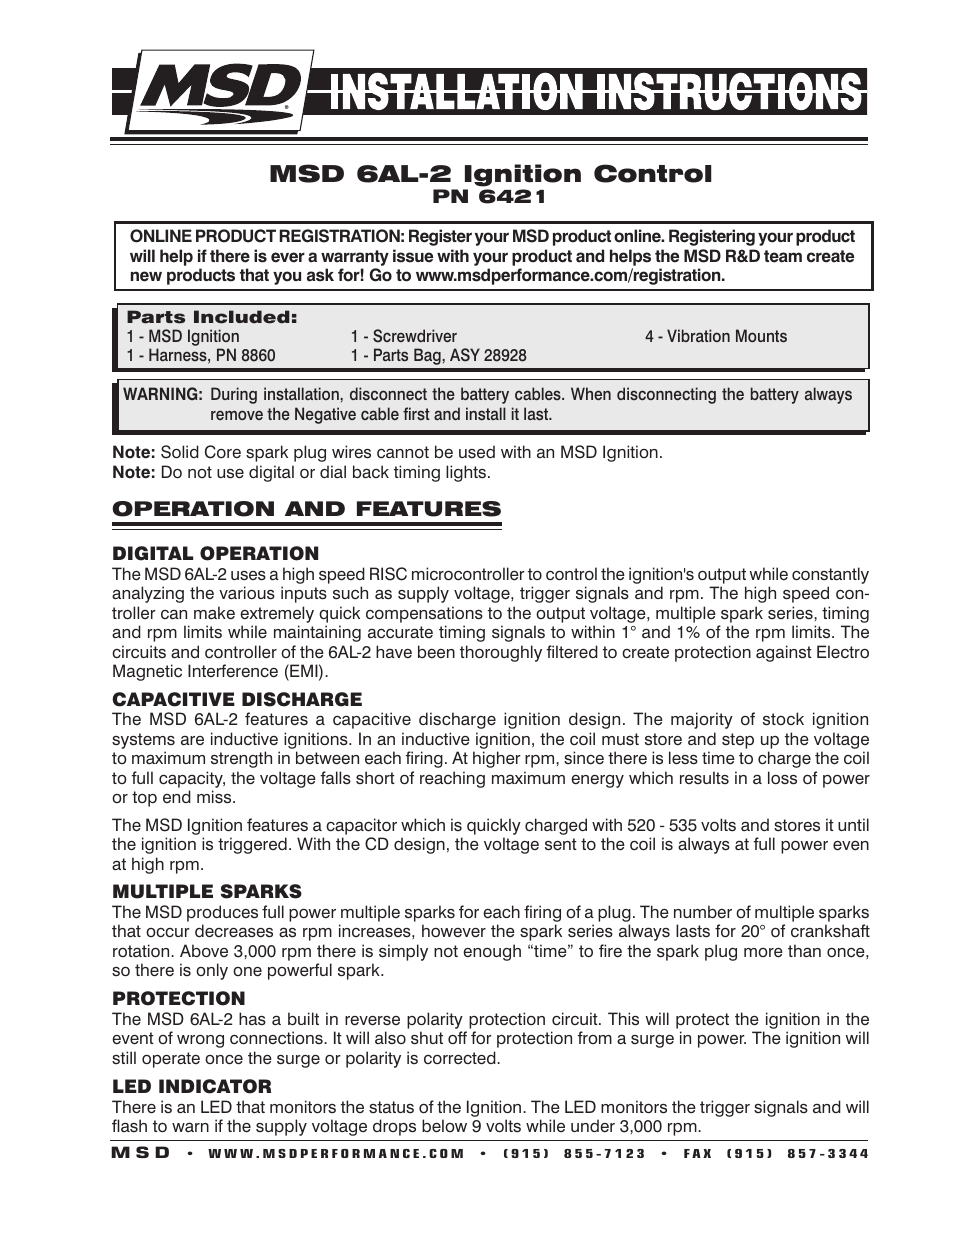 MSD 6421 6AL 2 Ignition Control Installation User Manual 28 Pages